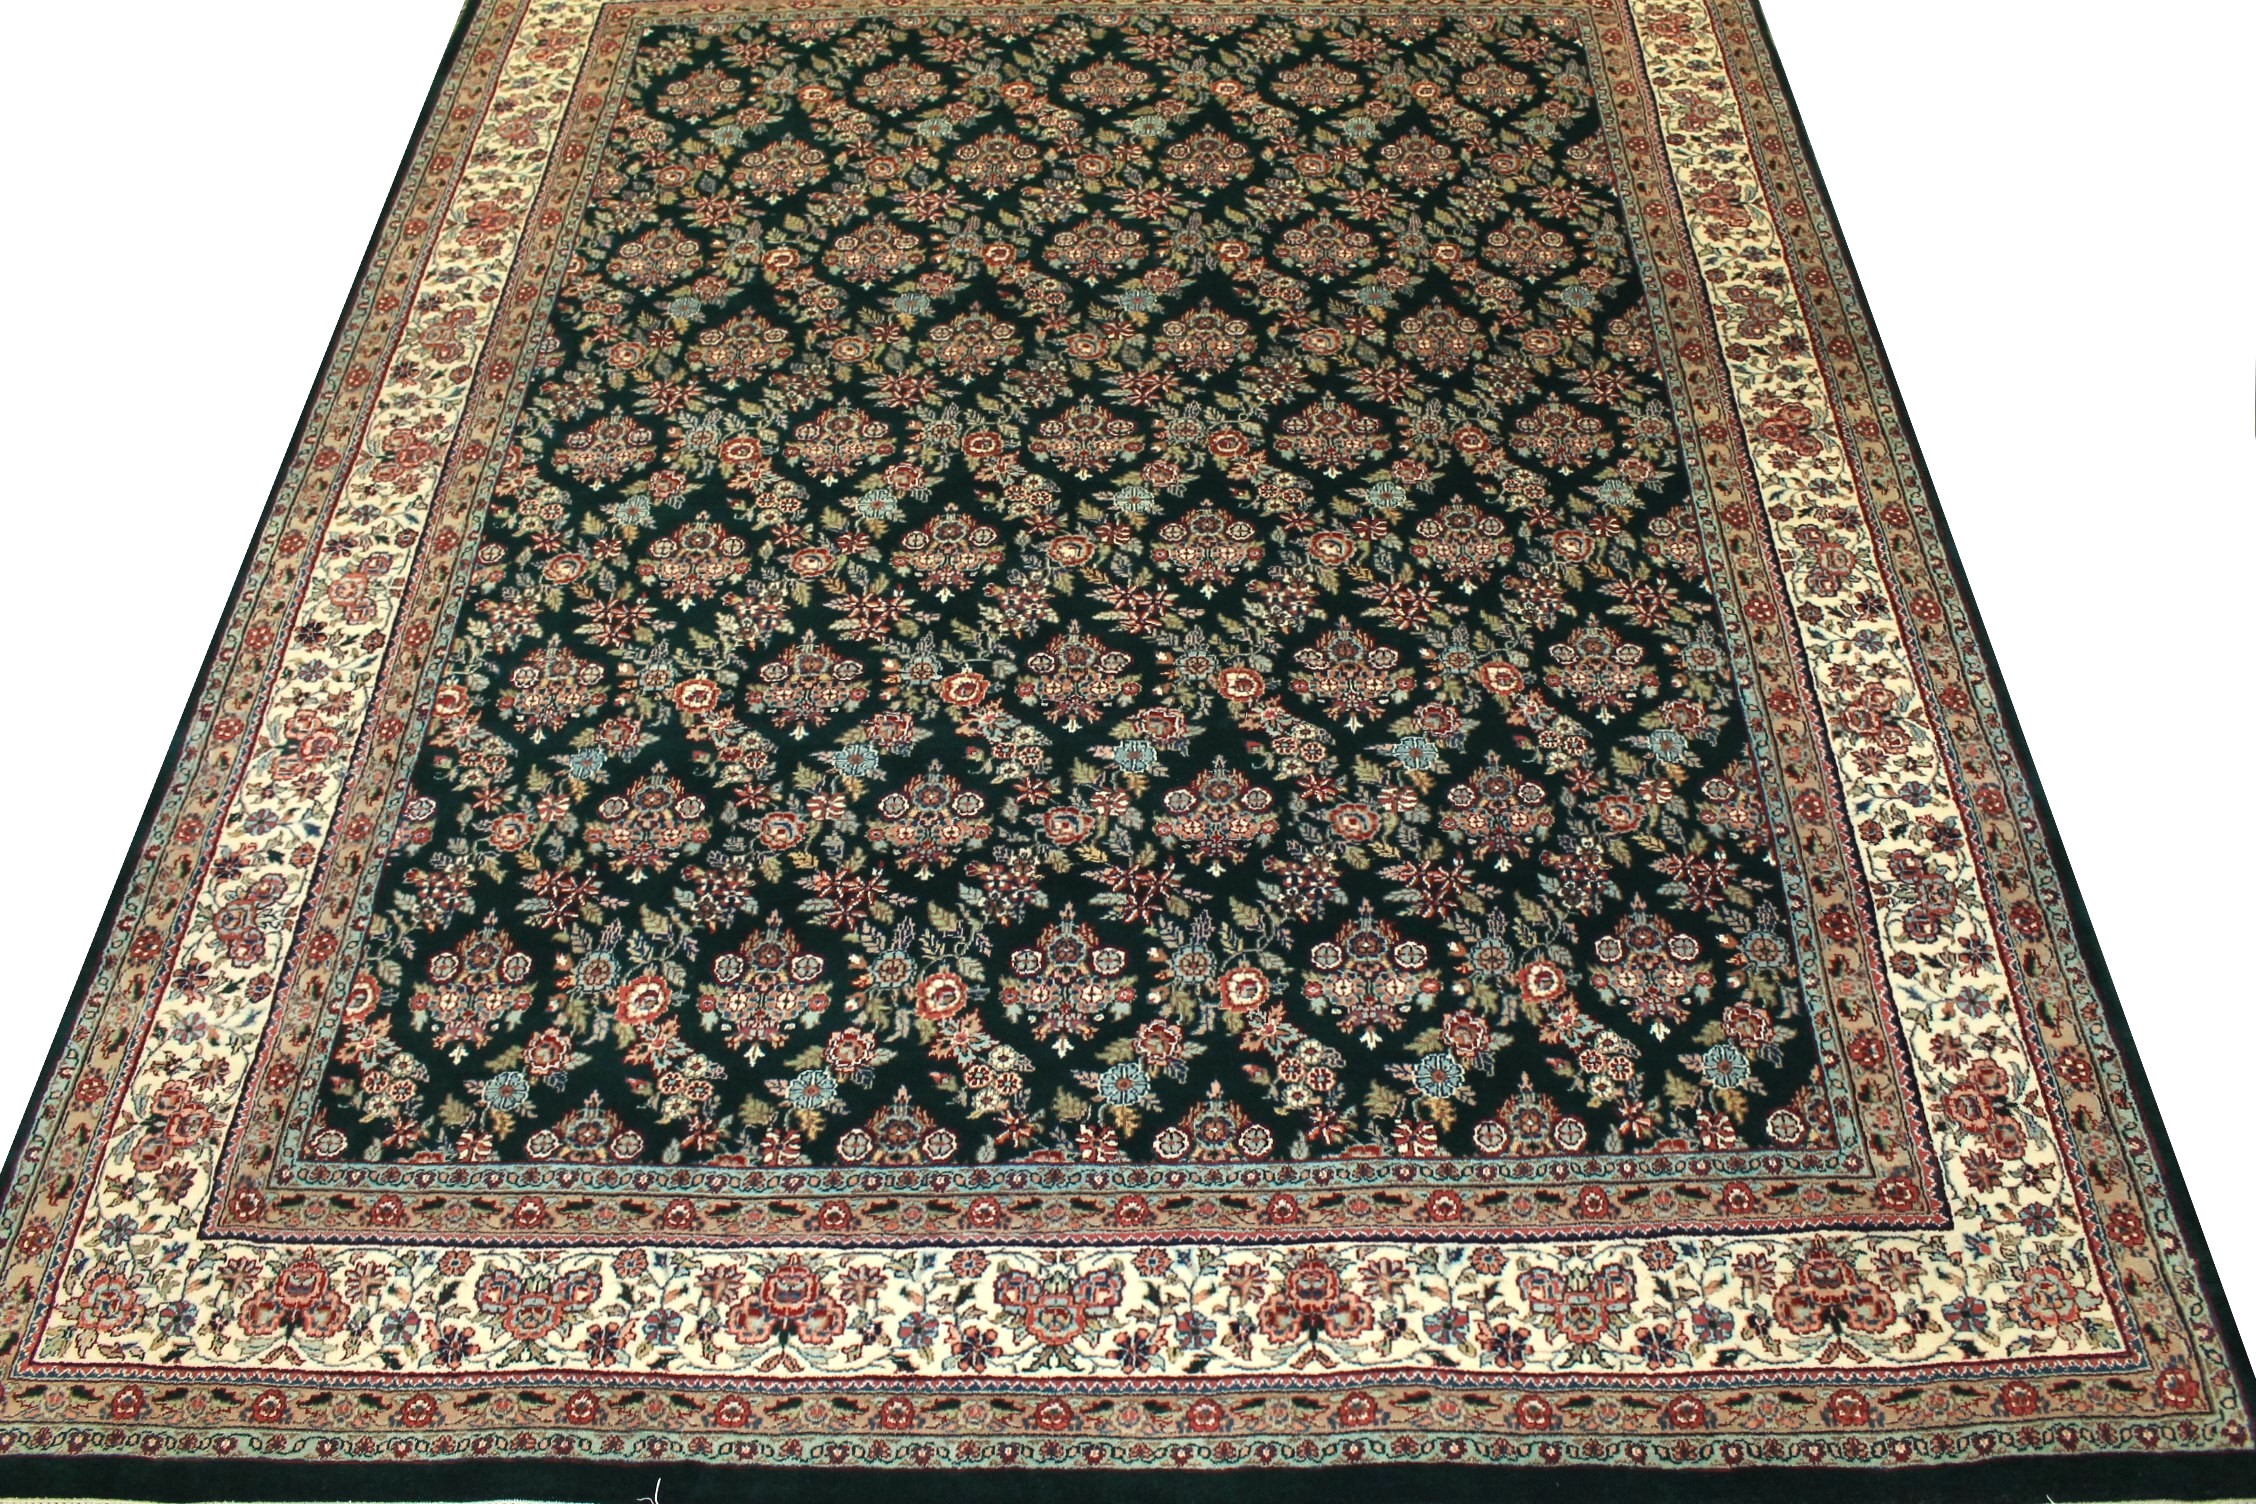 8x10 Traditional Hand Knotted Wool Area Rug - MR0748